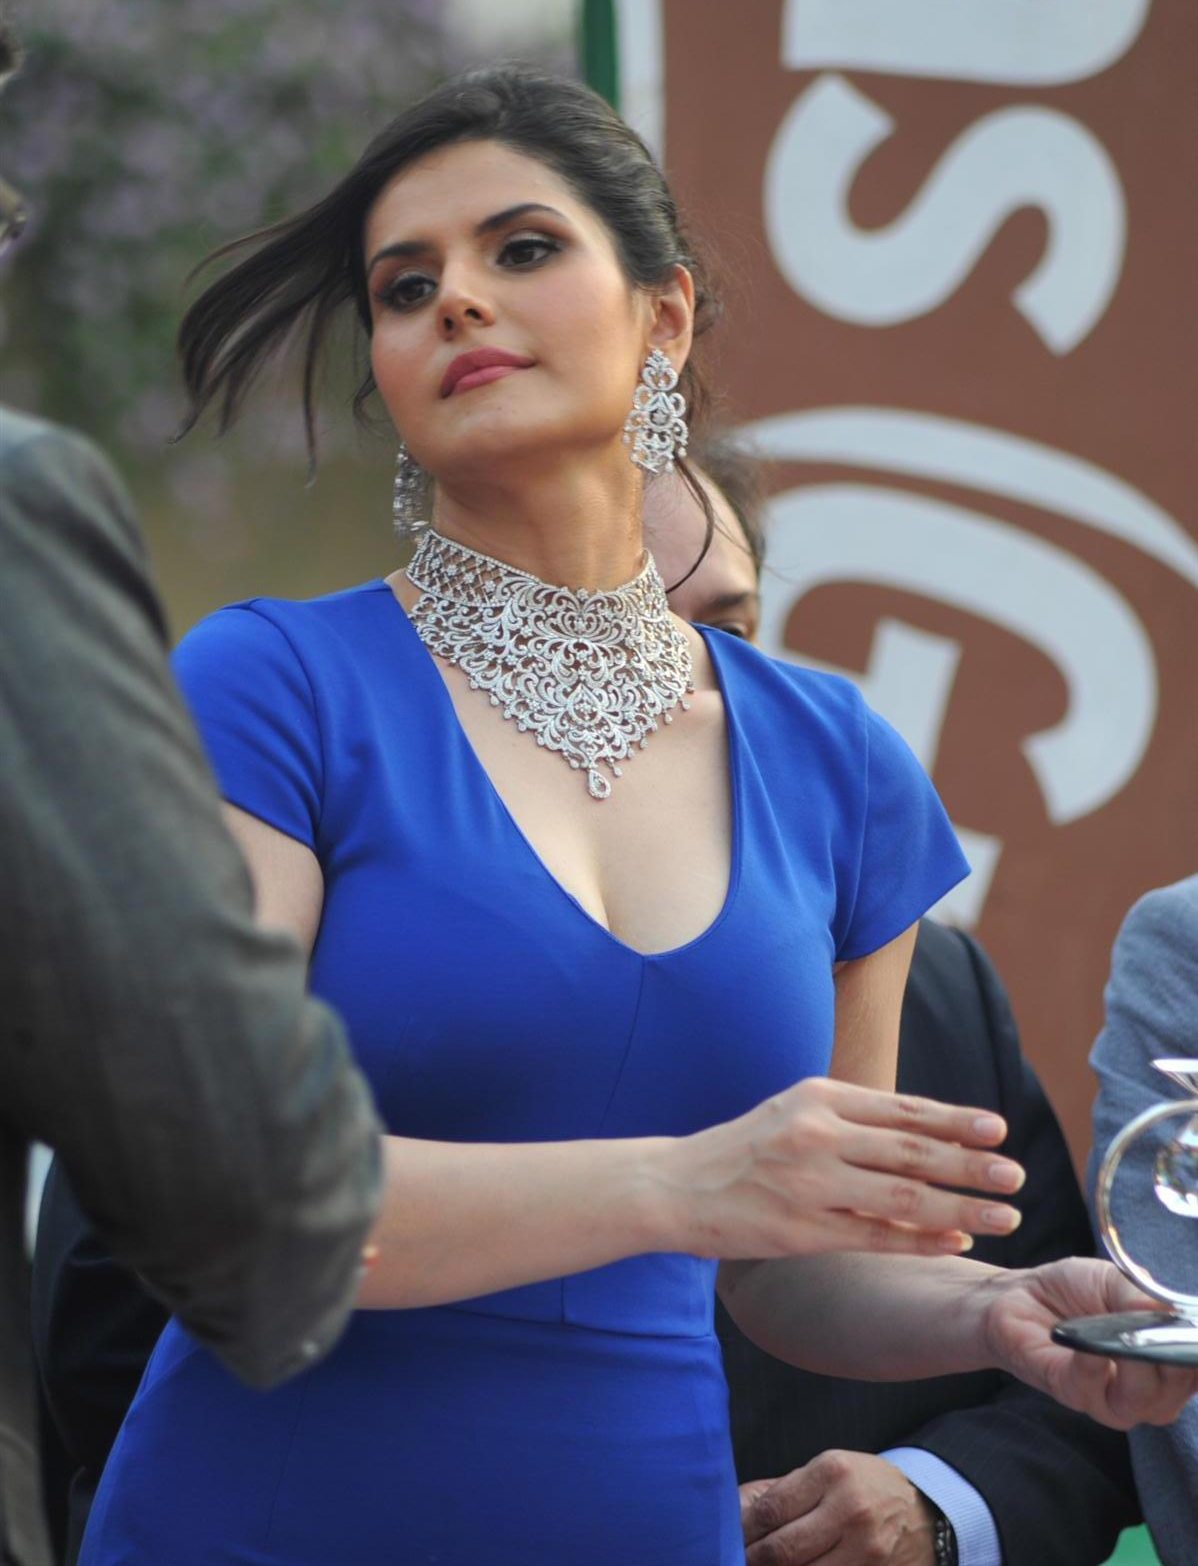 High Quality Bollywood Celebrity Pictures: The Gorgeous